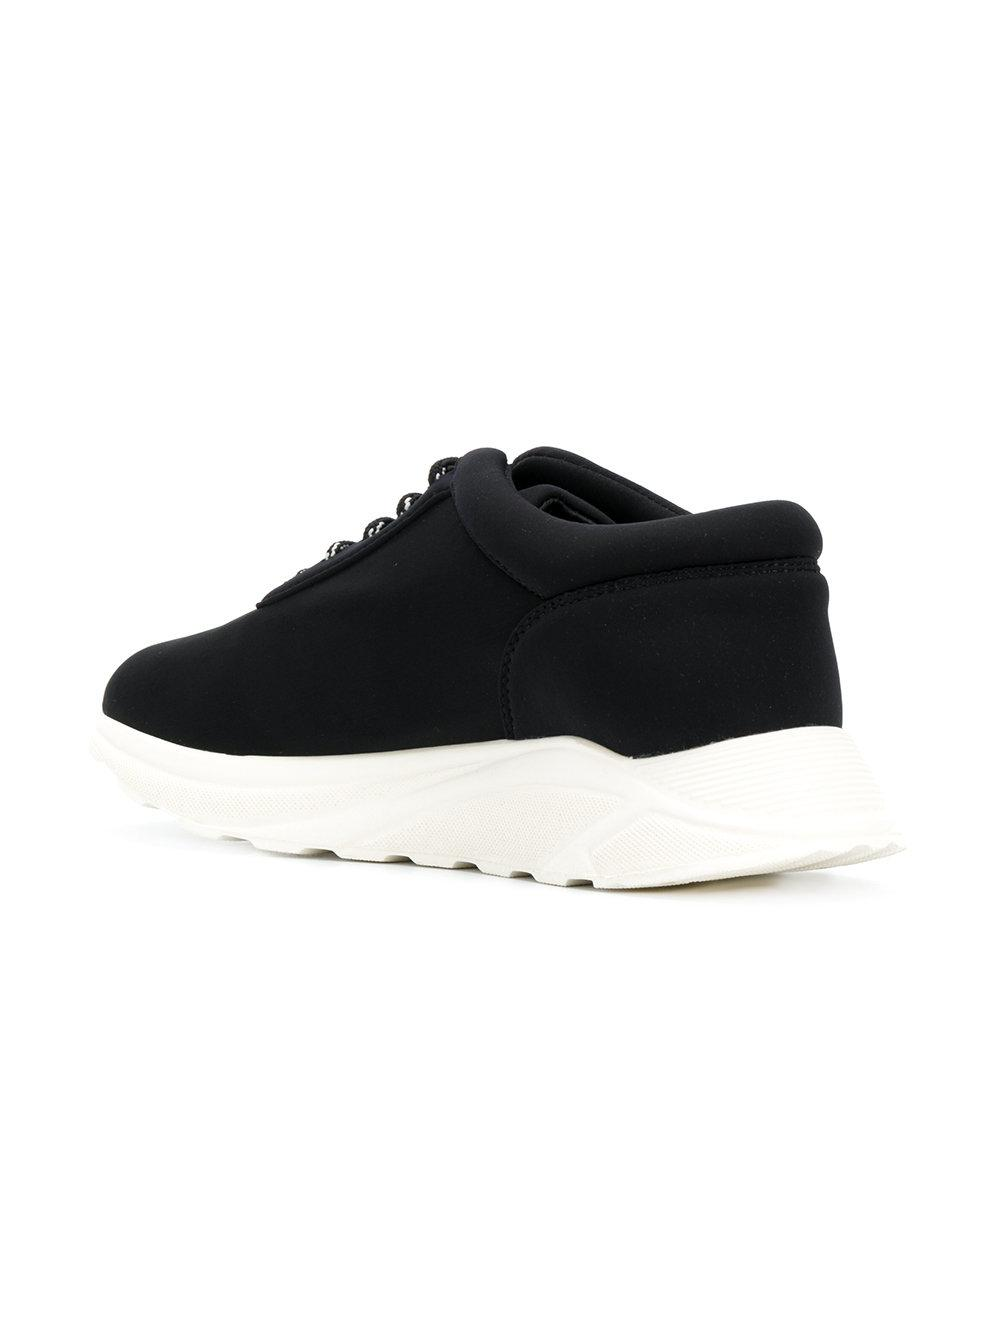 Joshua SandersLOGO - High-top trainers - black uKpoJILDp